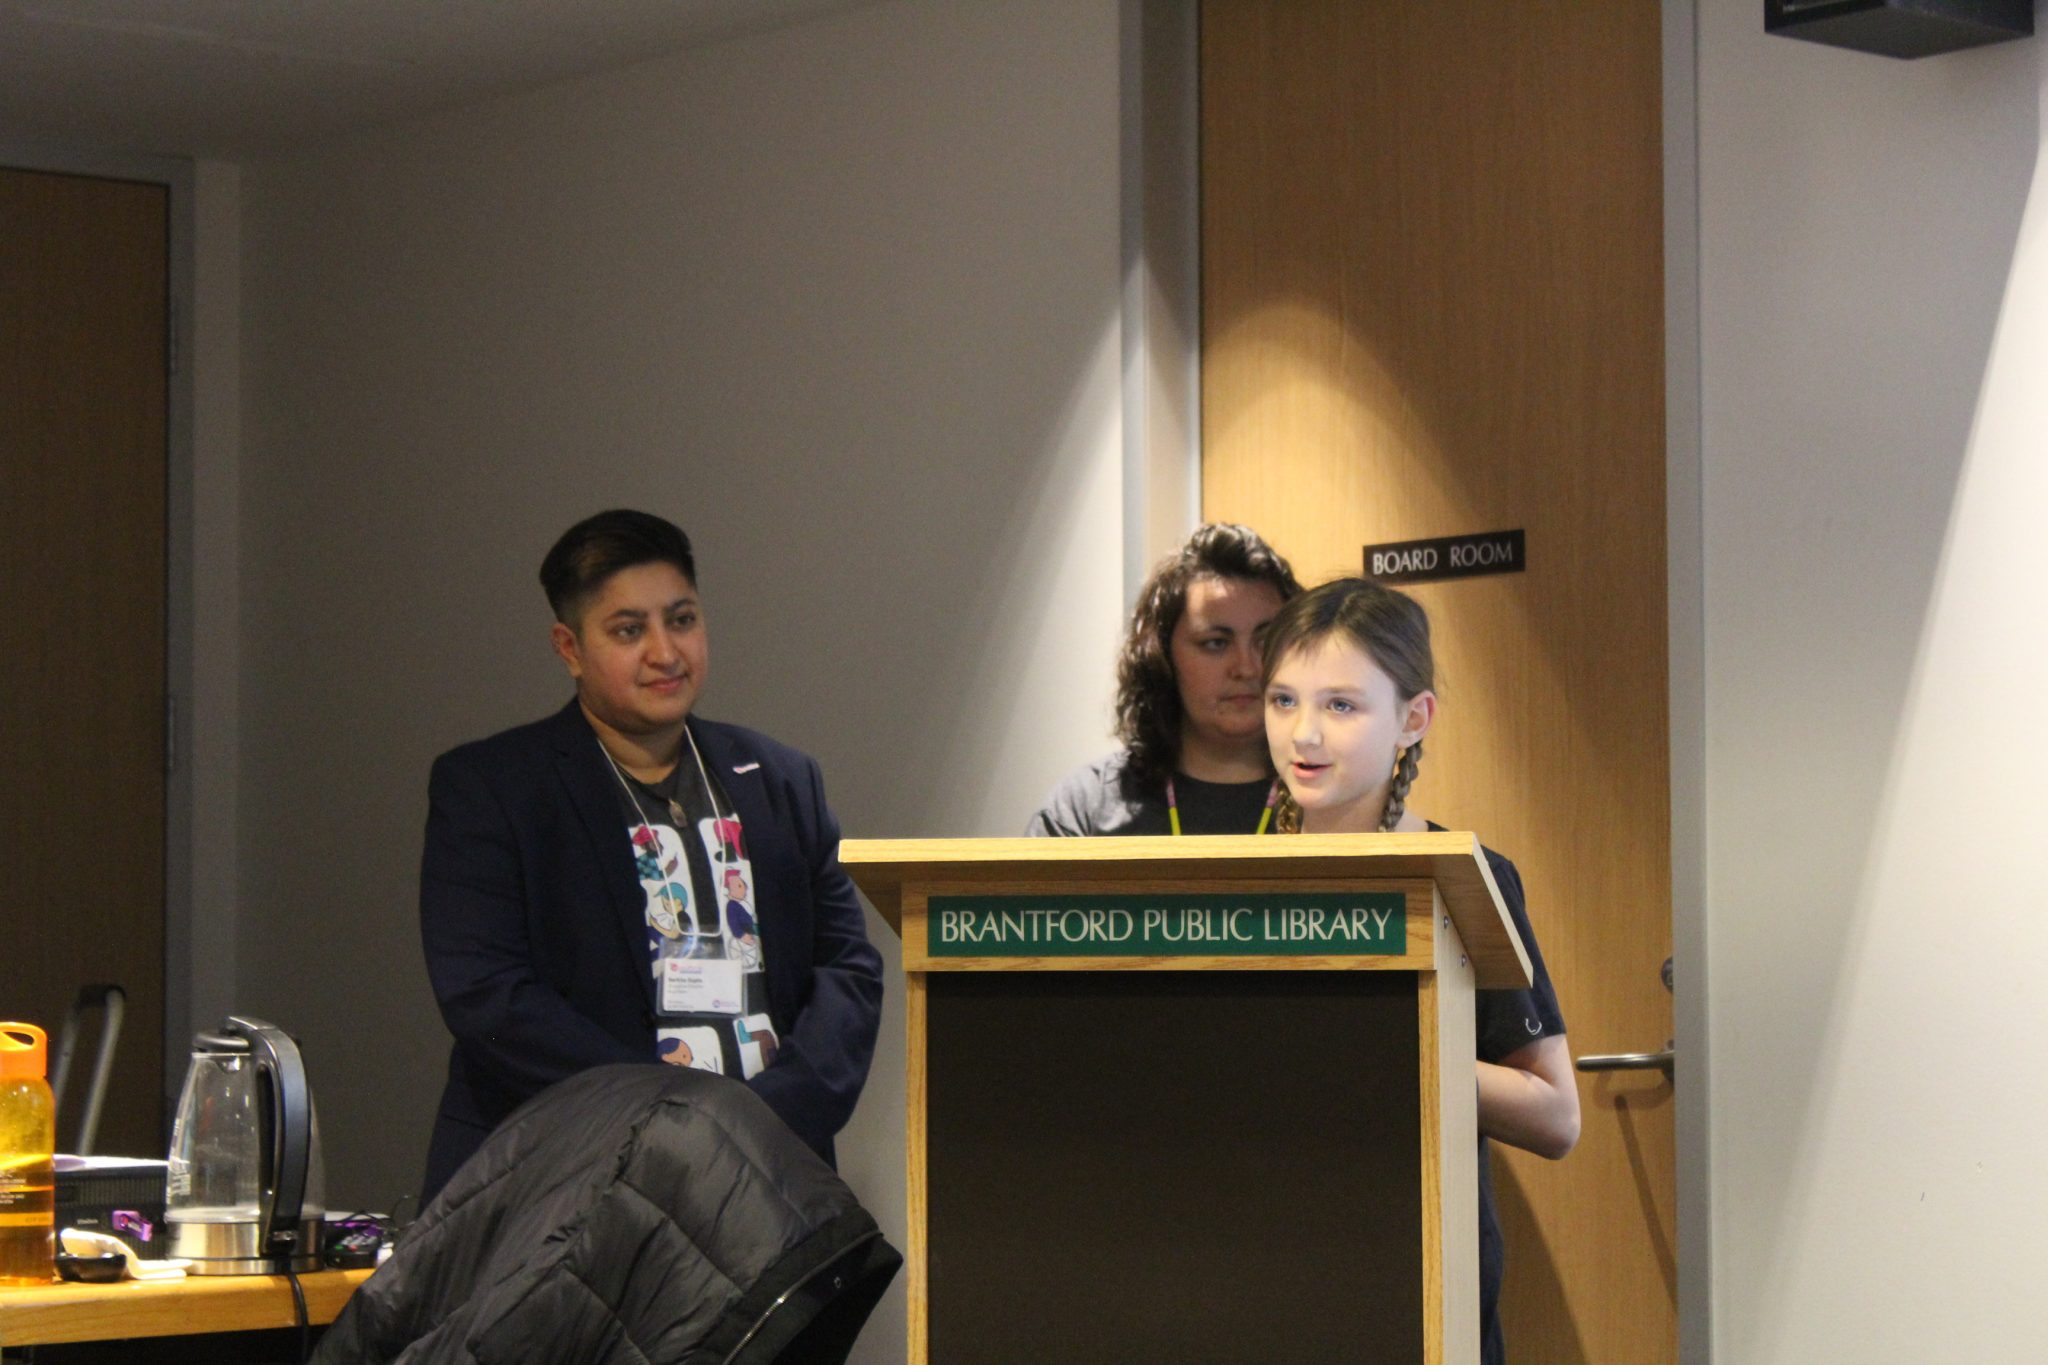 Young youth ambassador speaks at a podium at the Youthline event.